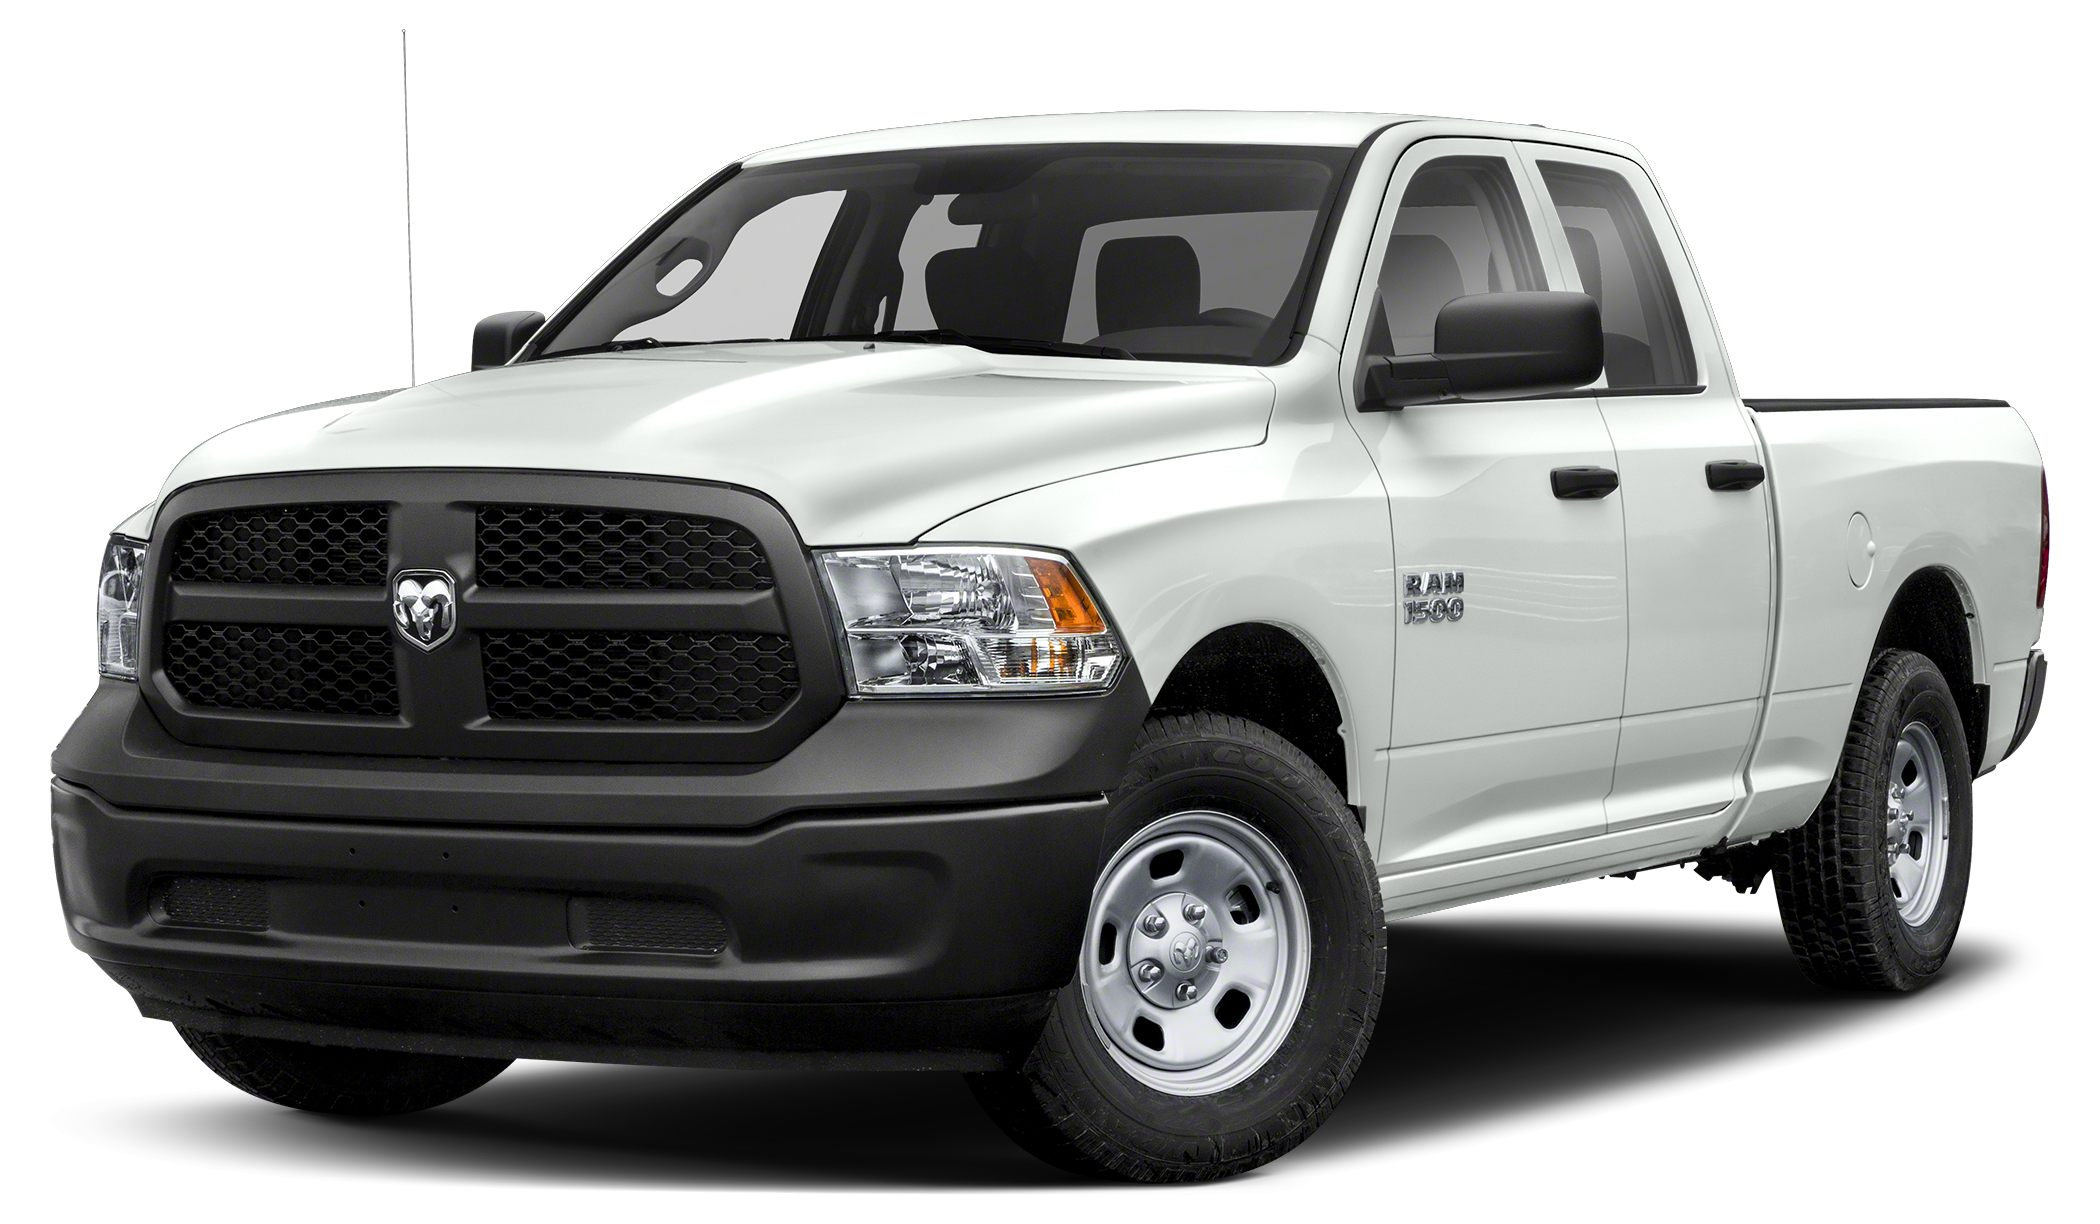 2014 RAM 1500 TradesmanExpress For more information on this vehicleplease contact the Teresa In